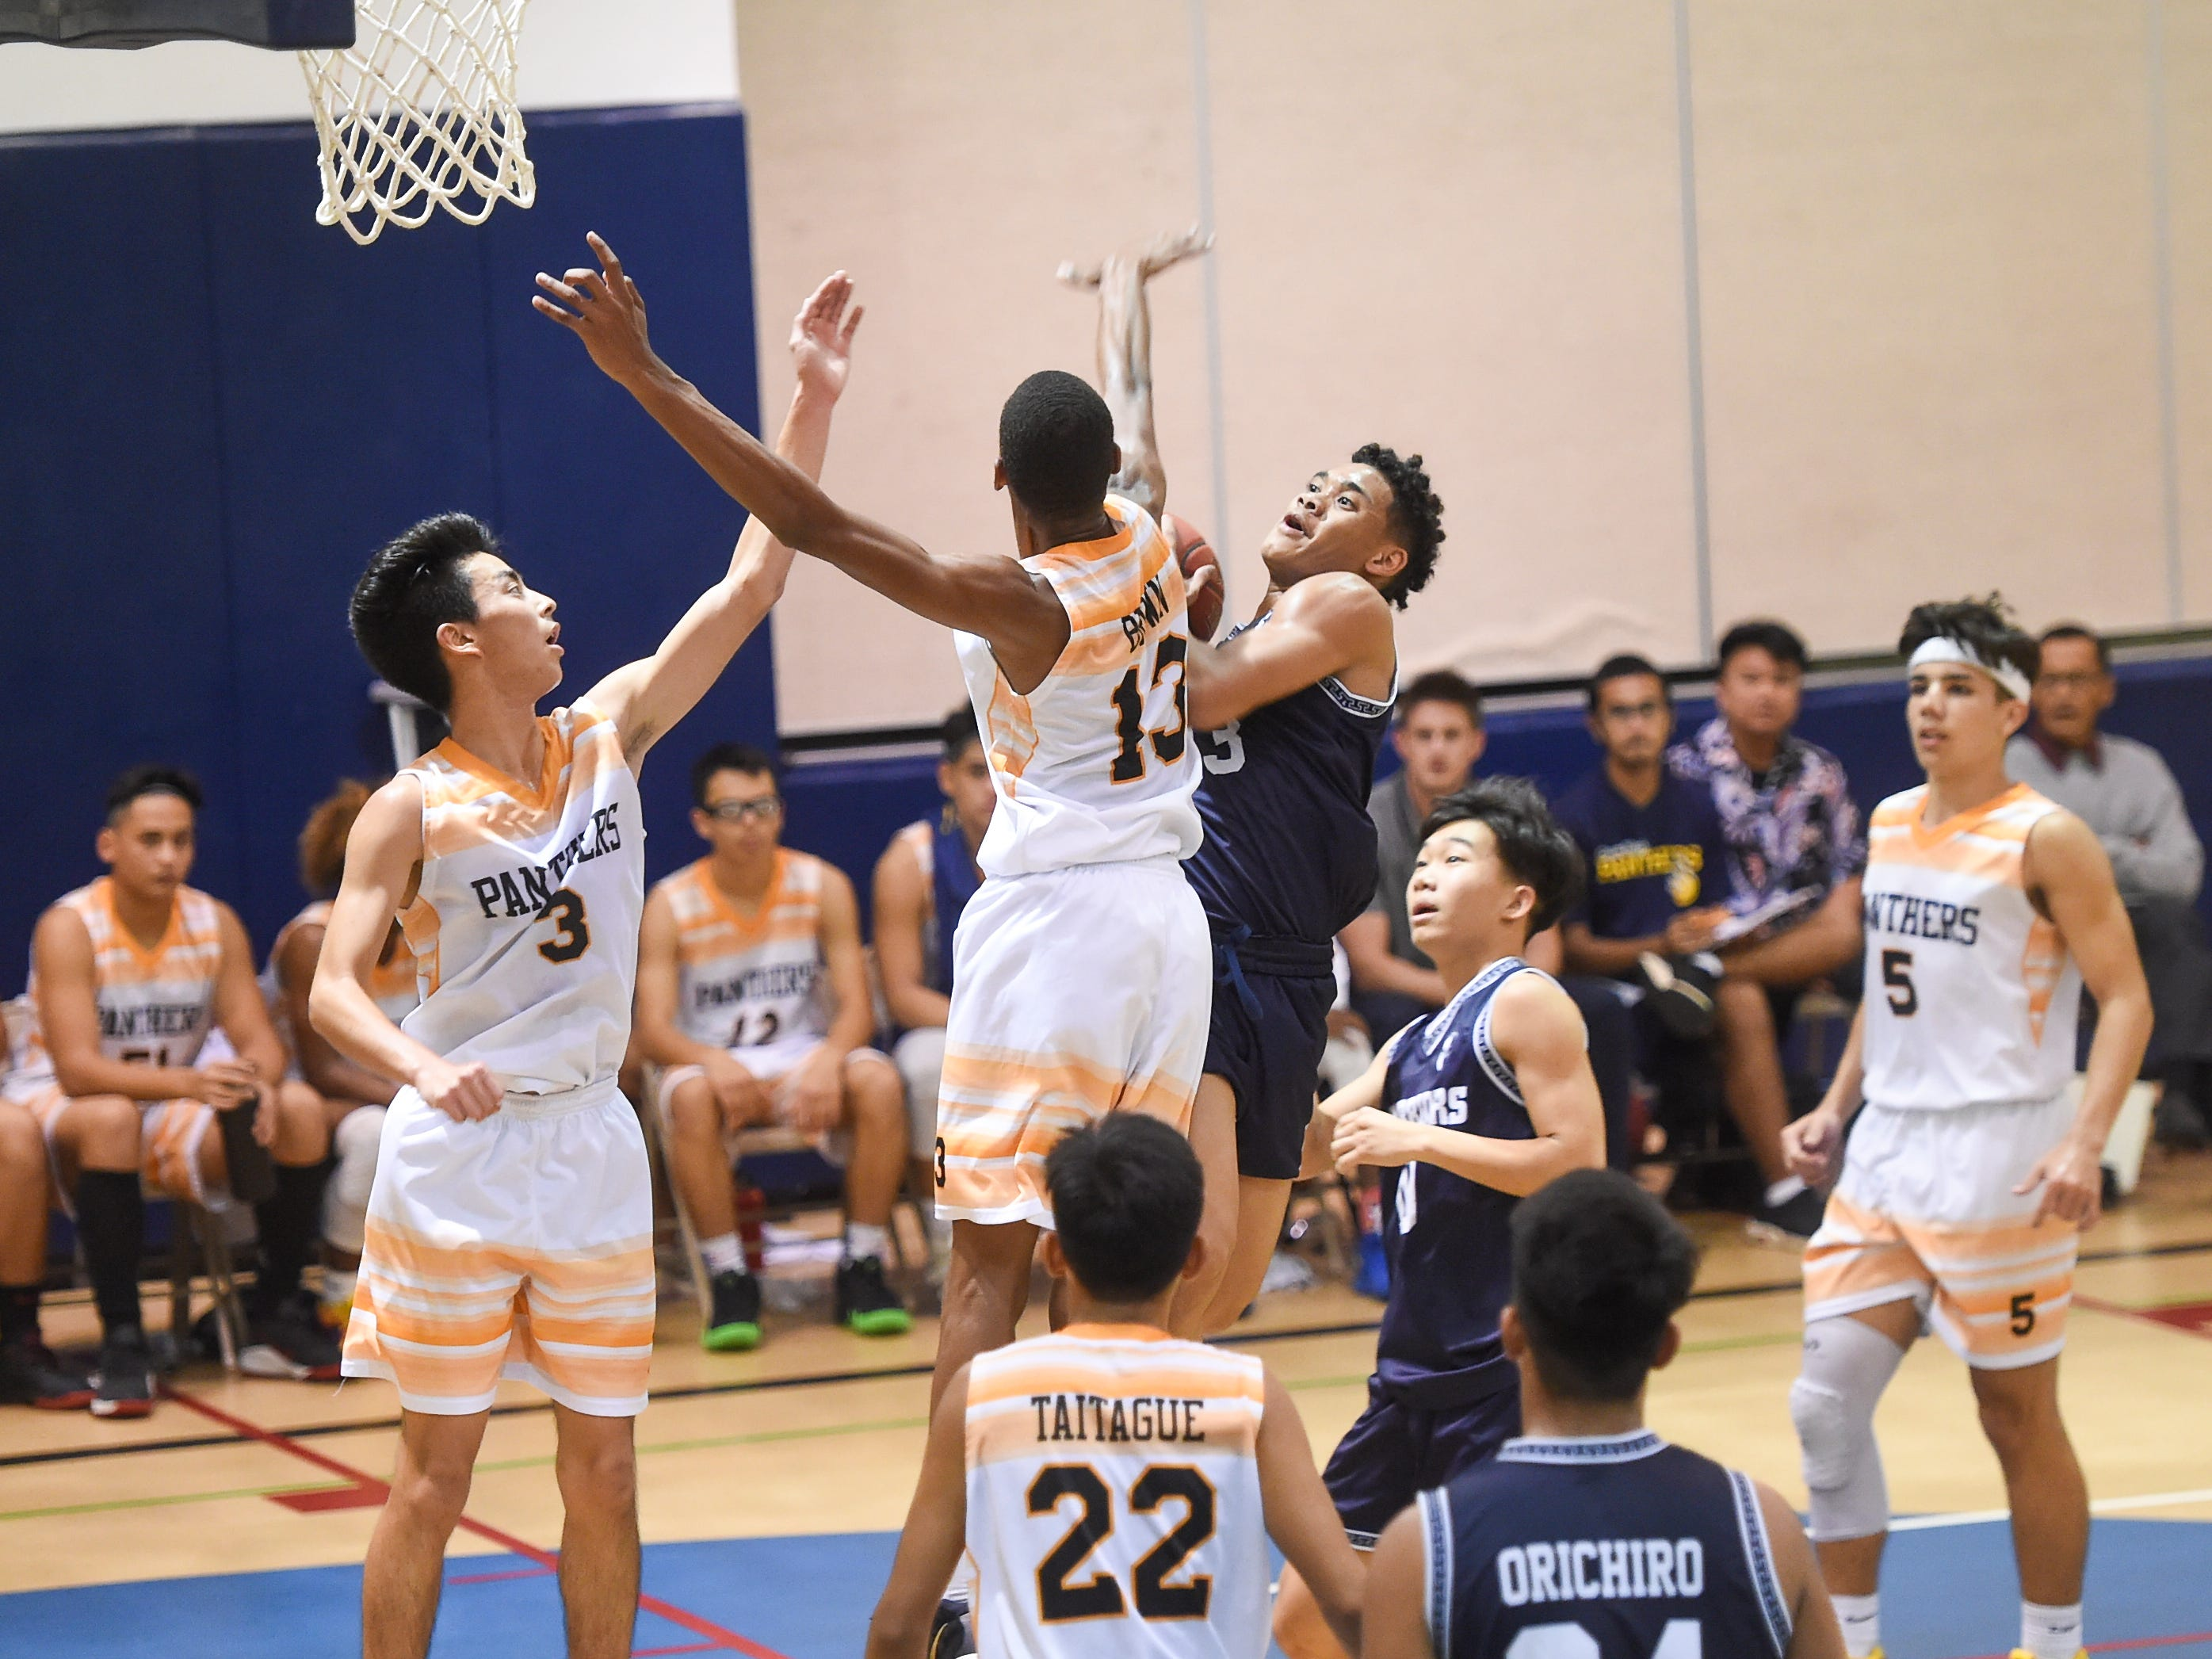 Guam High's Corey Brown (13) goes for a block on St. Paul's Jahmar White during their IIAAG Boys' Basketball game at the Guam High School Gym, Feb. 5, 2019.